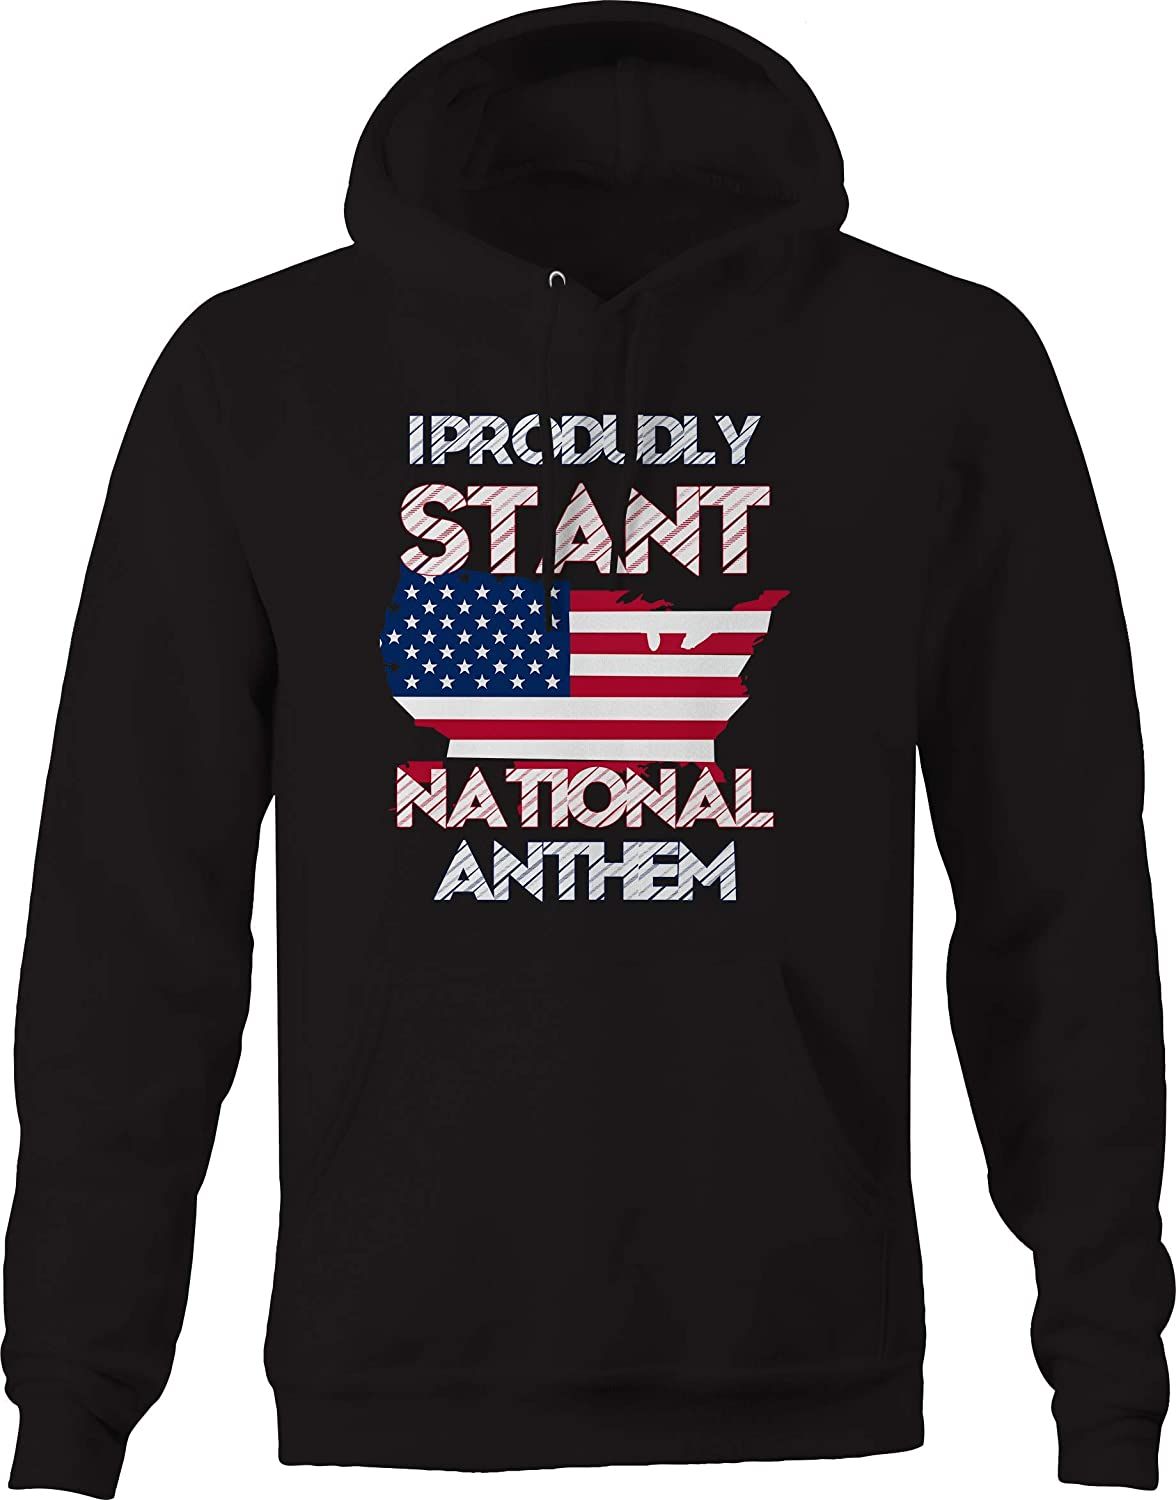 Proudly Stand for National Anthem American Flag Pledge USA Sweatshirt